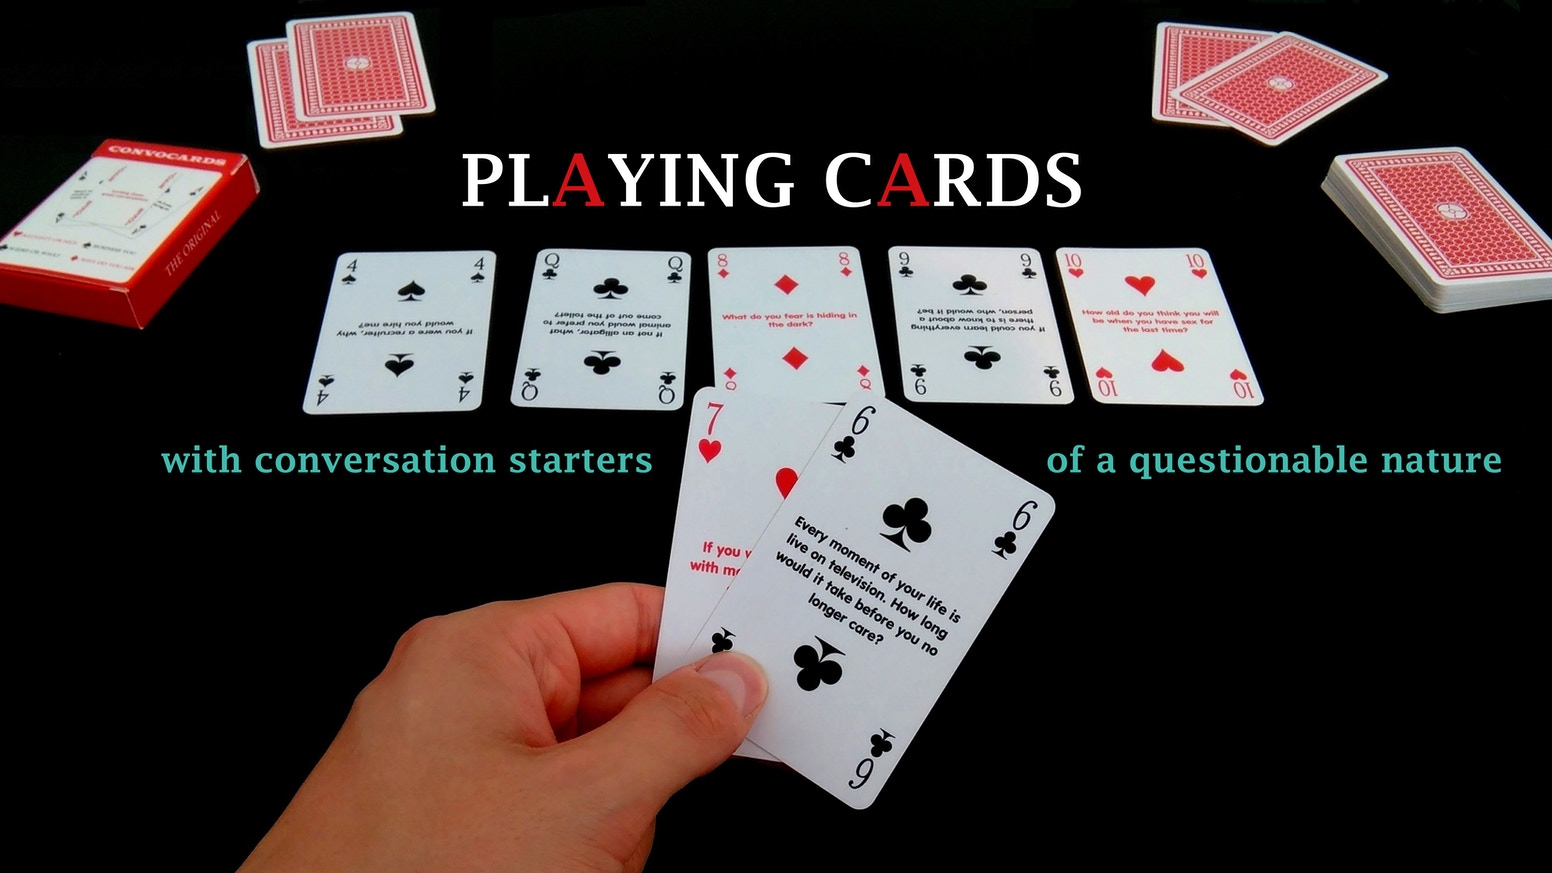 Thanks to social science, we have reinvented the conversation starter, and put in on regular playing cards to connect people once more.